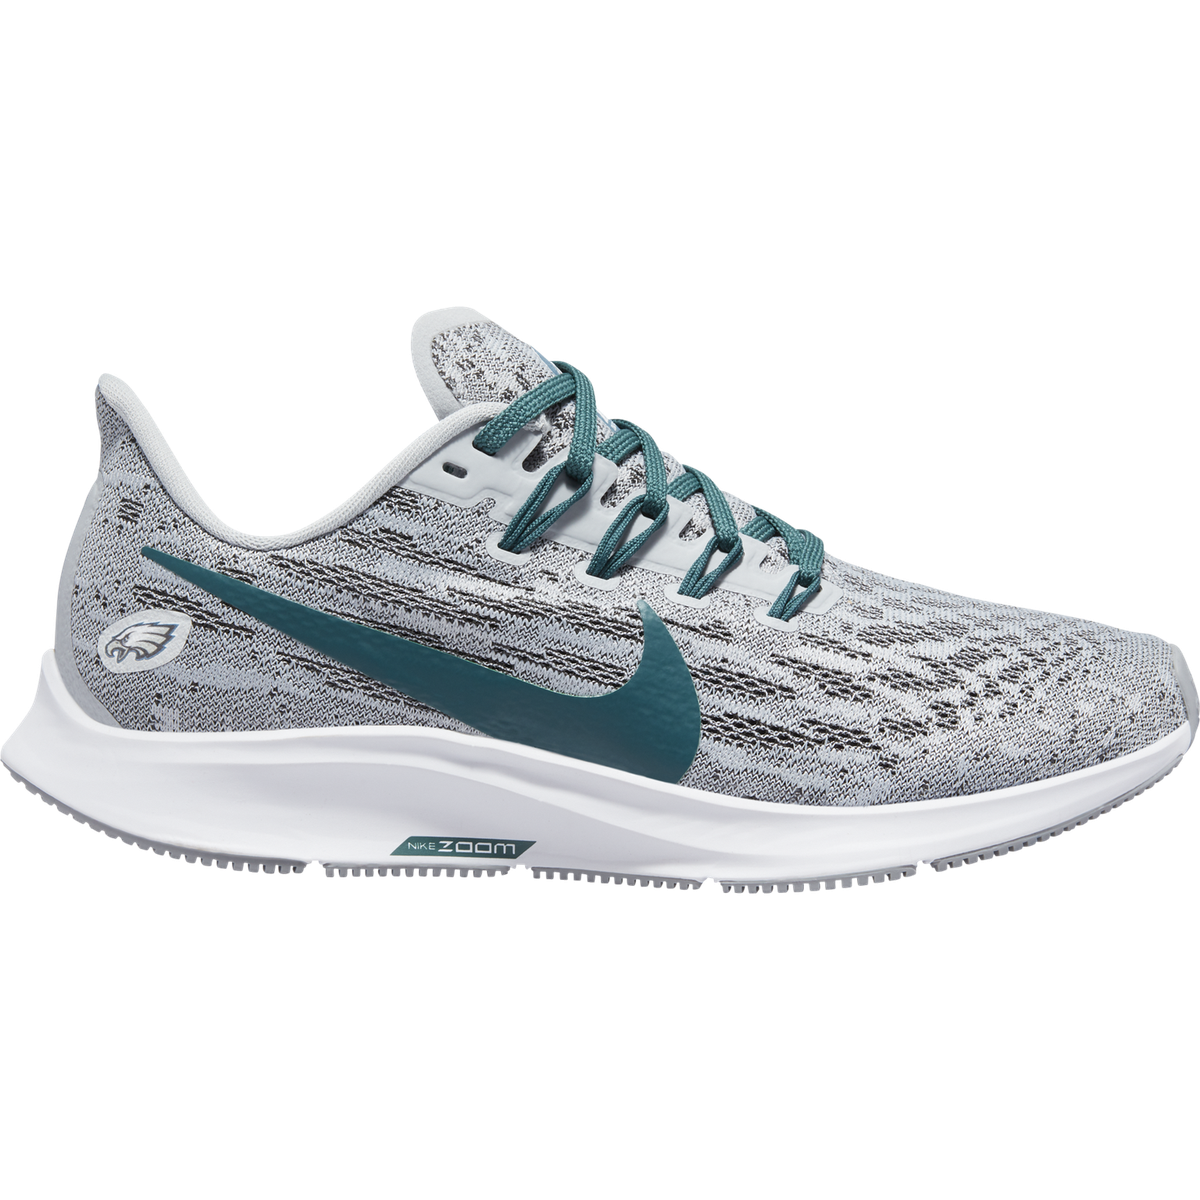 644d79ce Nike drops the new Air Zoom Pegasus 36 Eagles shoe collection ...